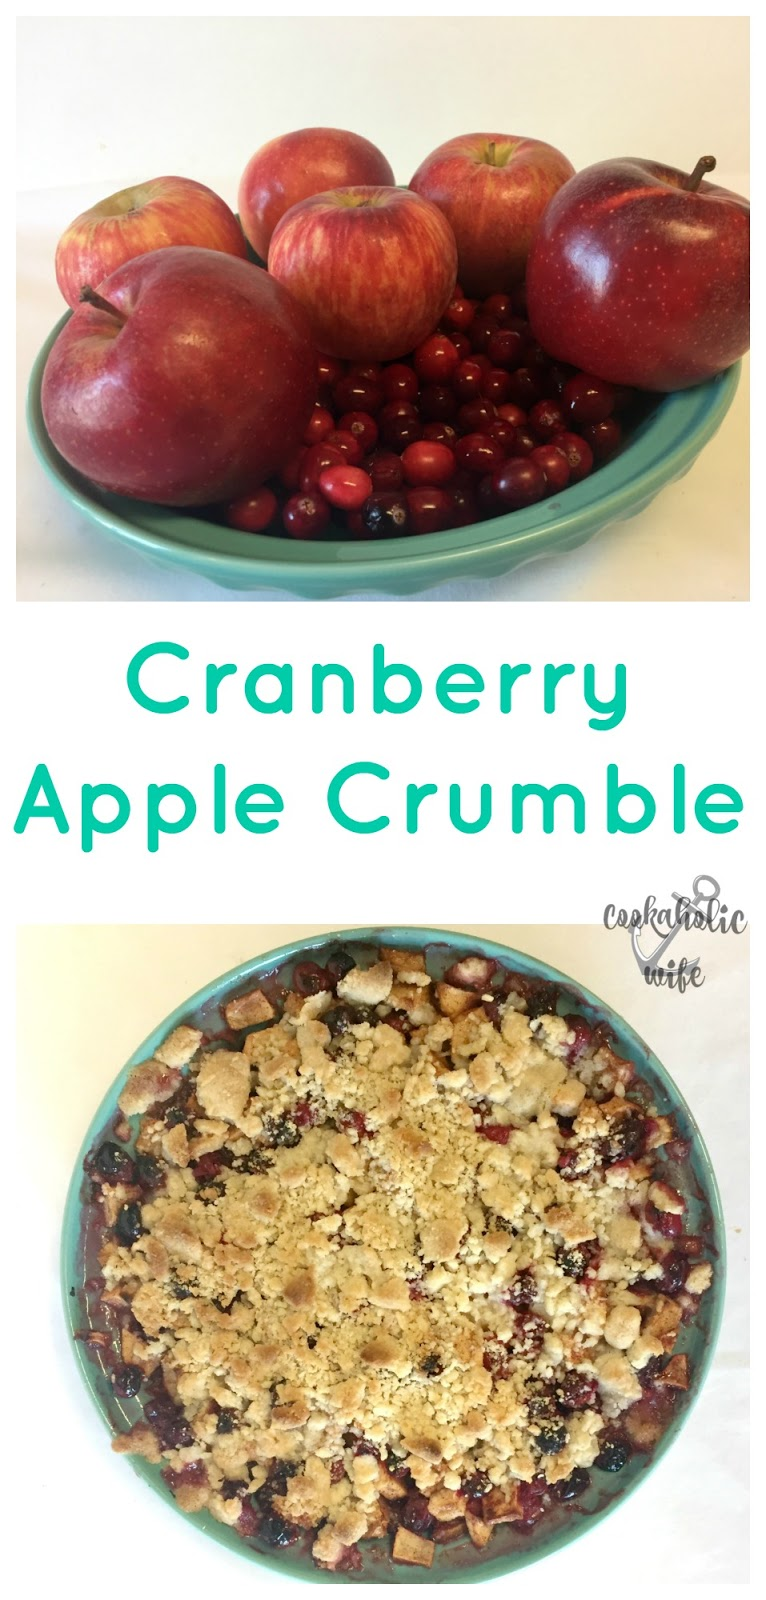 Cookaholic Wife: SRC: Apple Cranberry Crumble